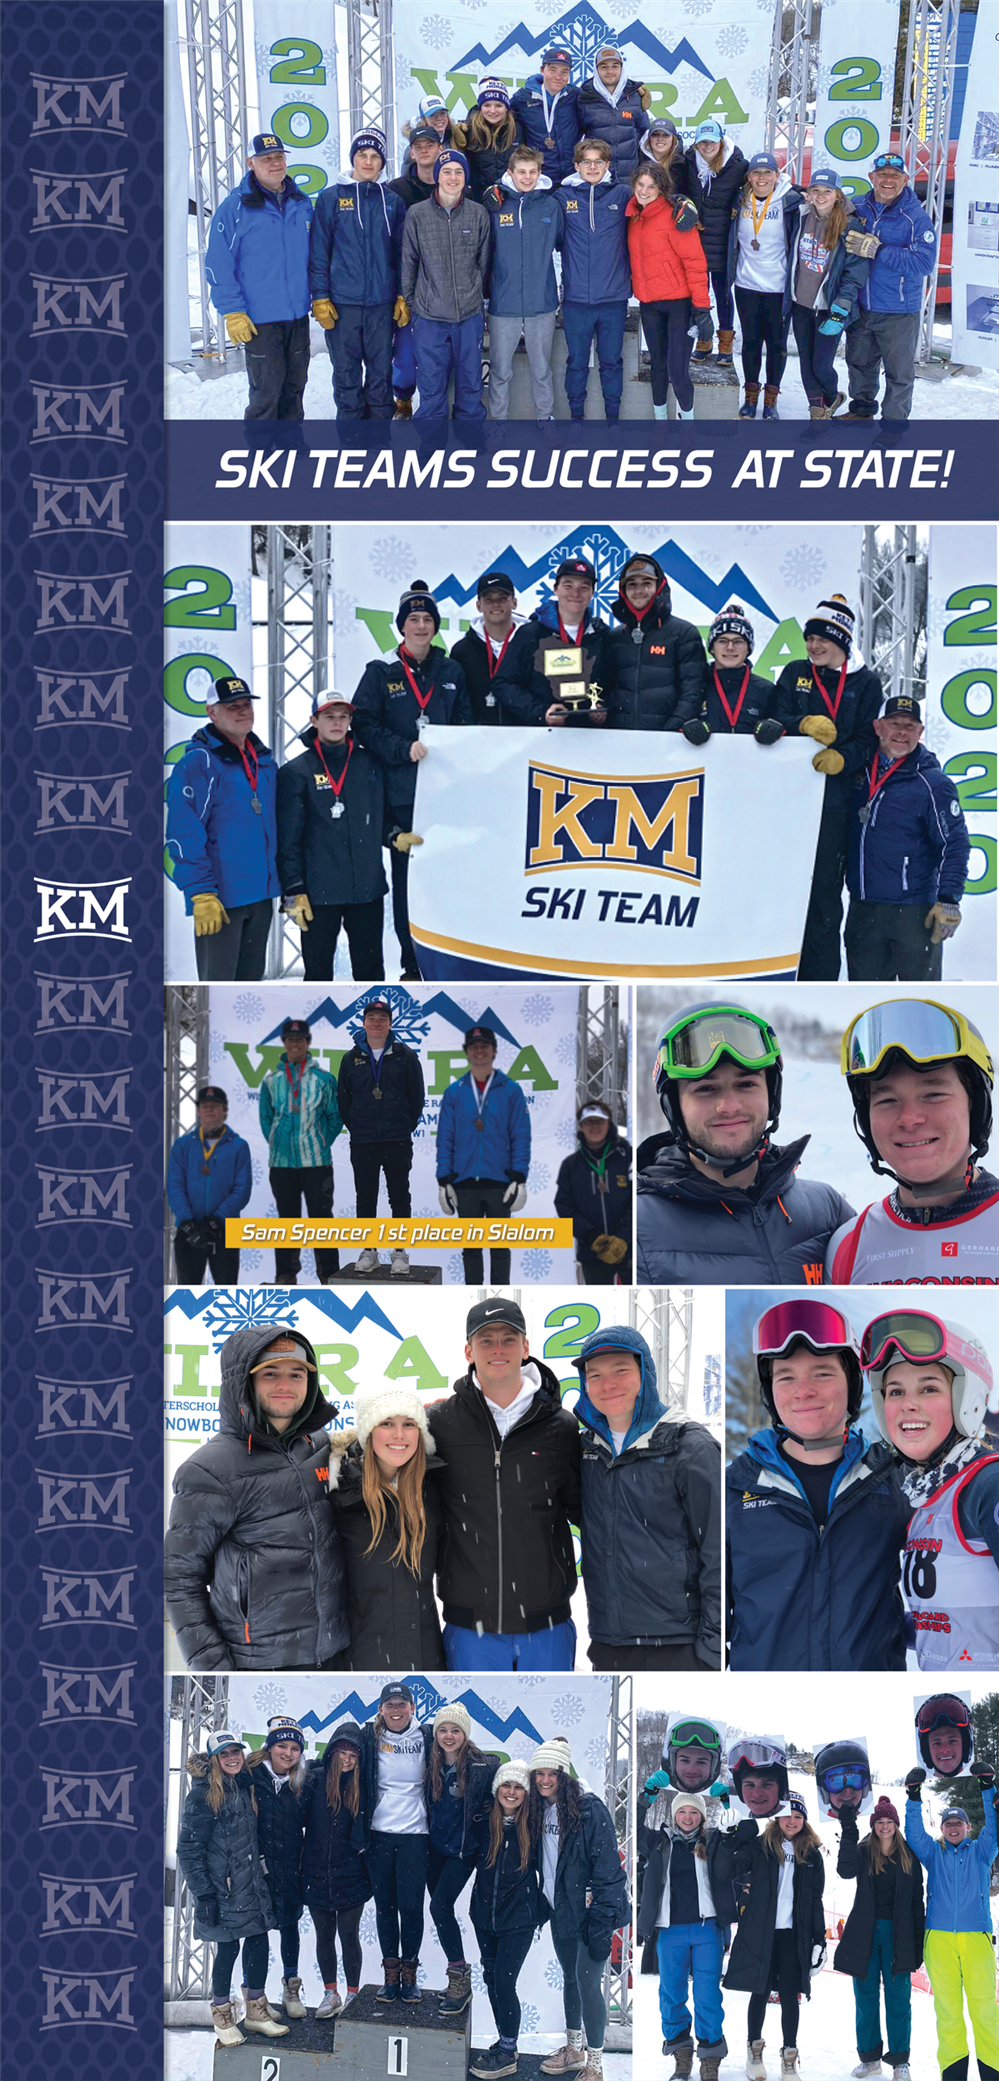 SKI TEAMS SUCCESS AT STATE!